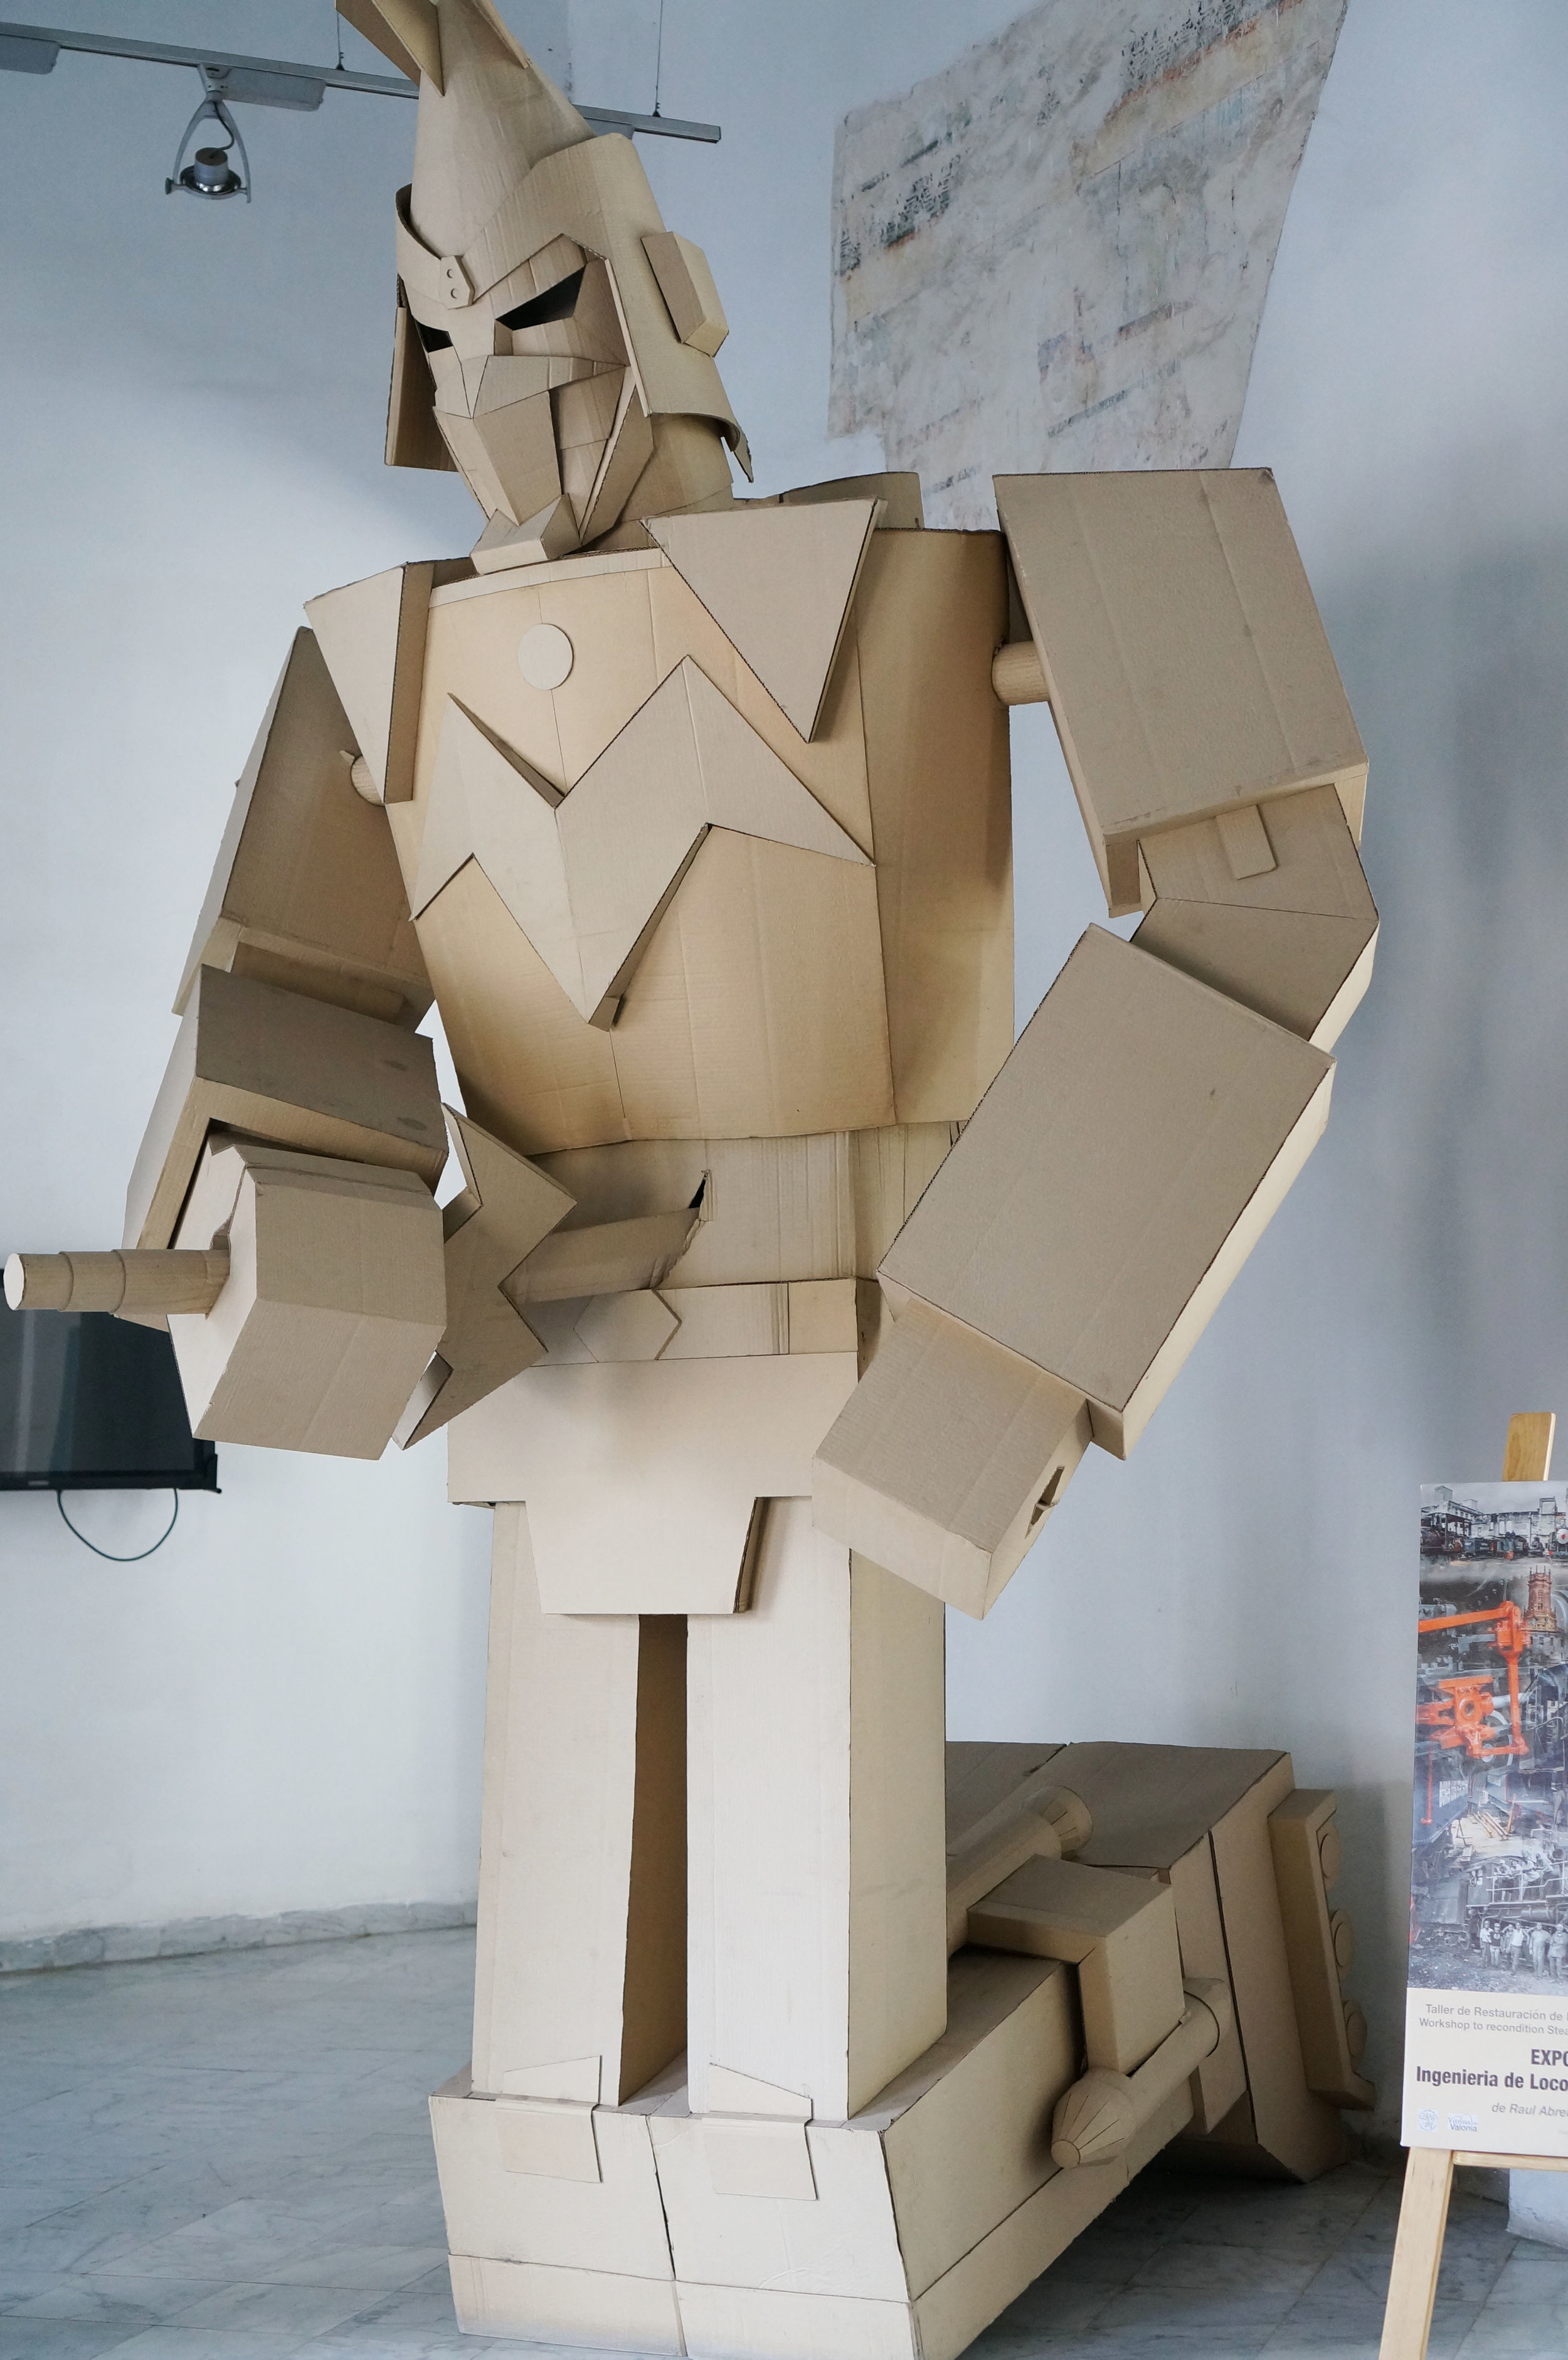 Cardboard robot on display at a small gallery